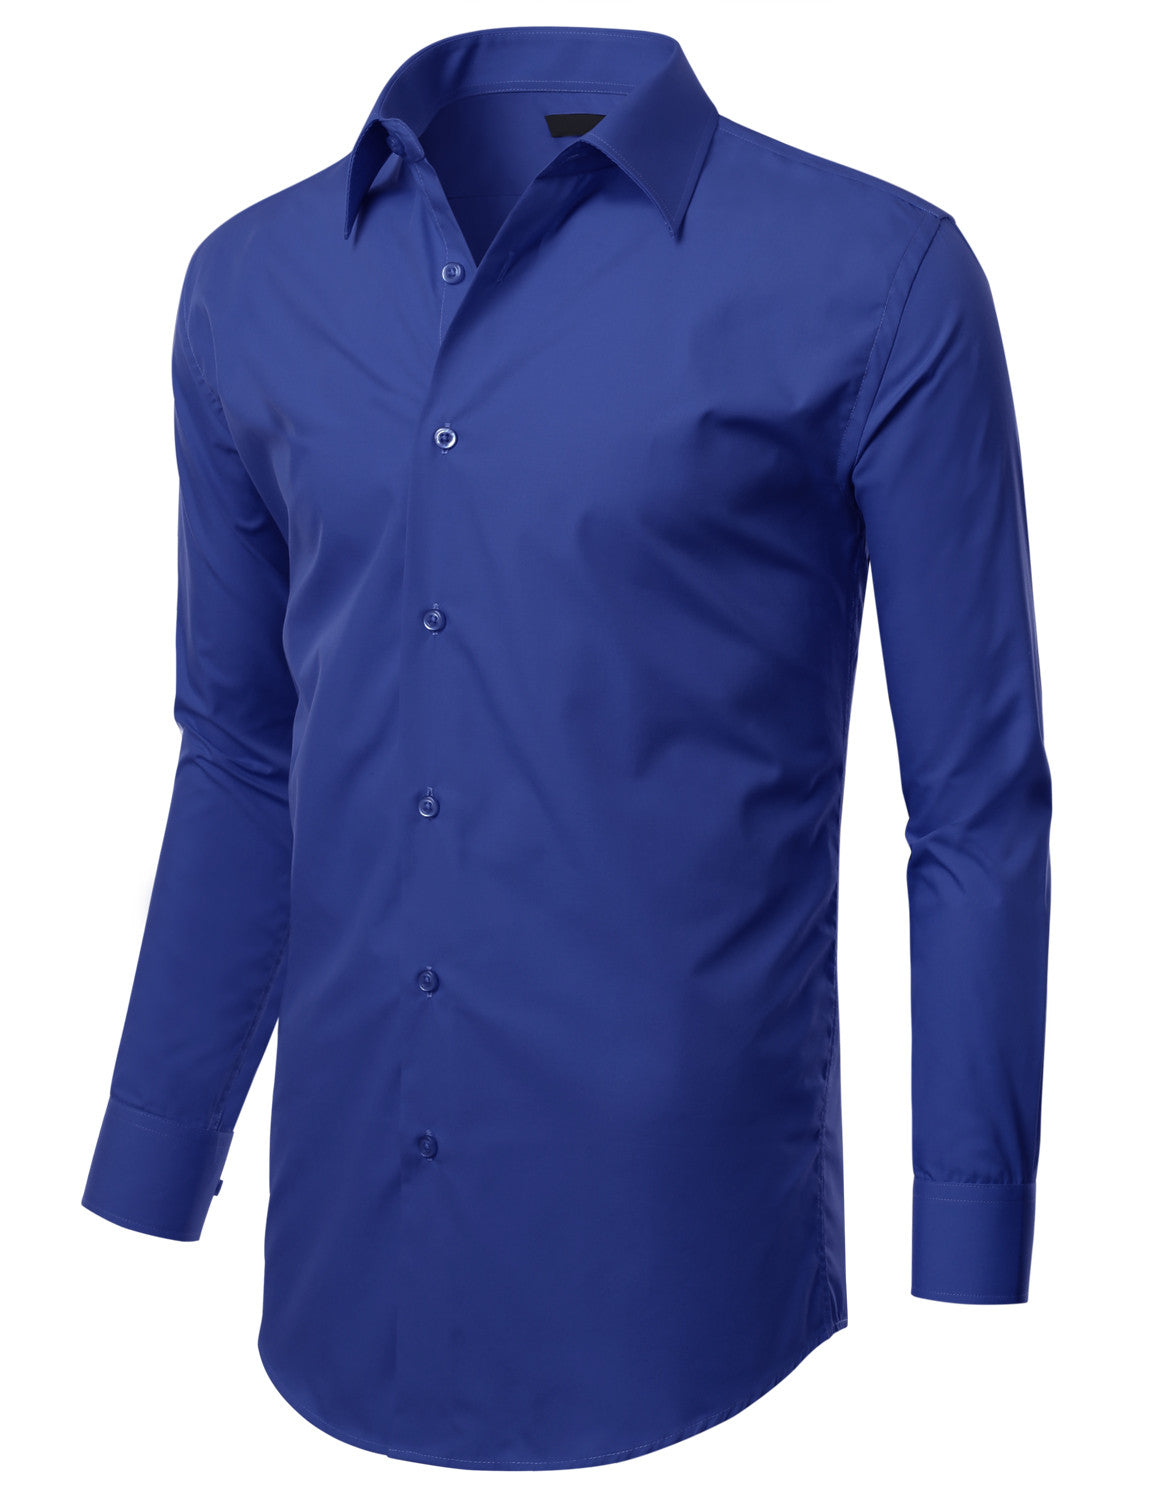 b49f62e231442 TC635ROYALBLUE Royal Blue Slim Fit Dress Shirt w  Reversible Cuff (Big    Tall Available